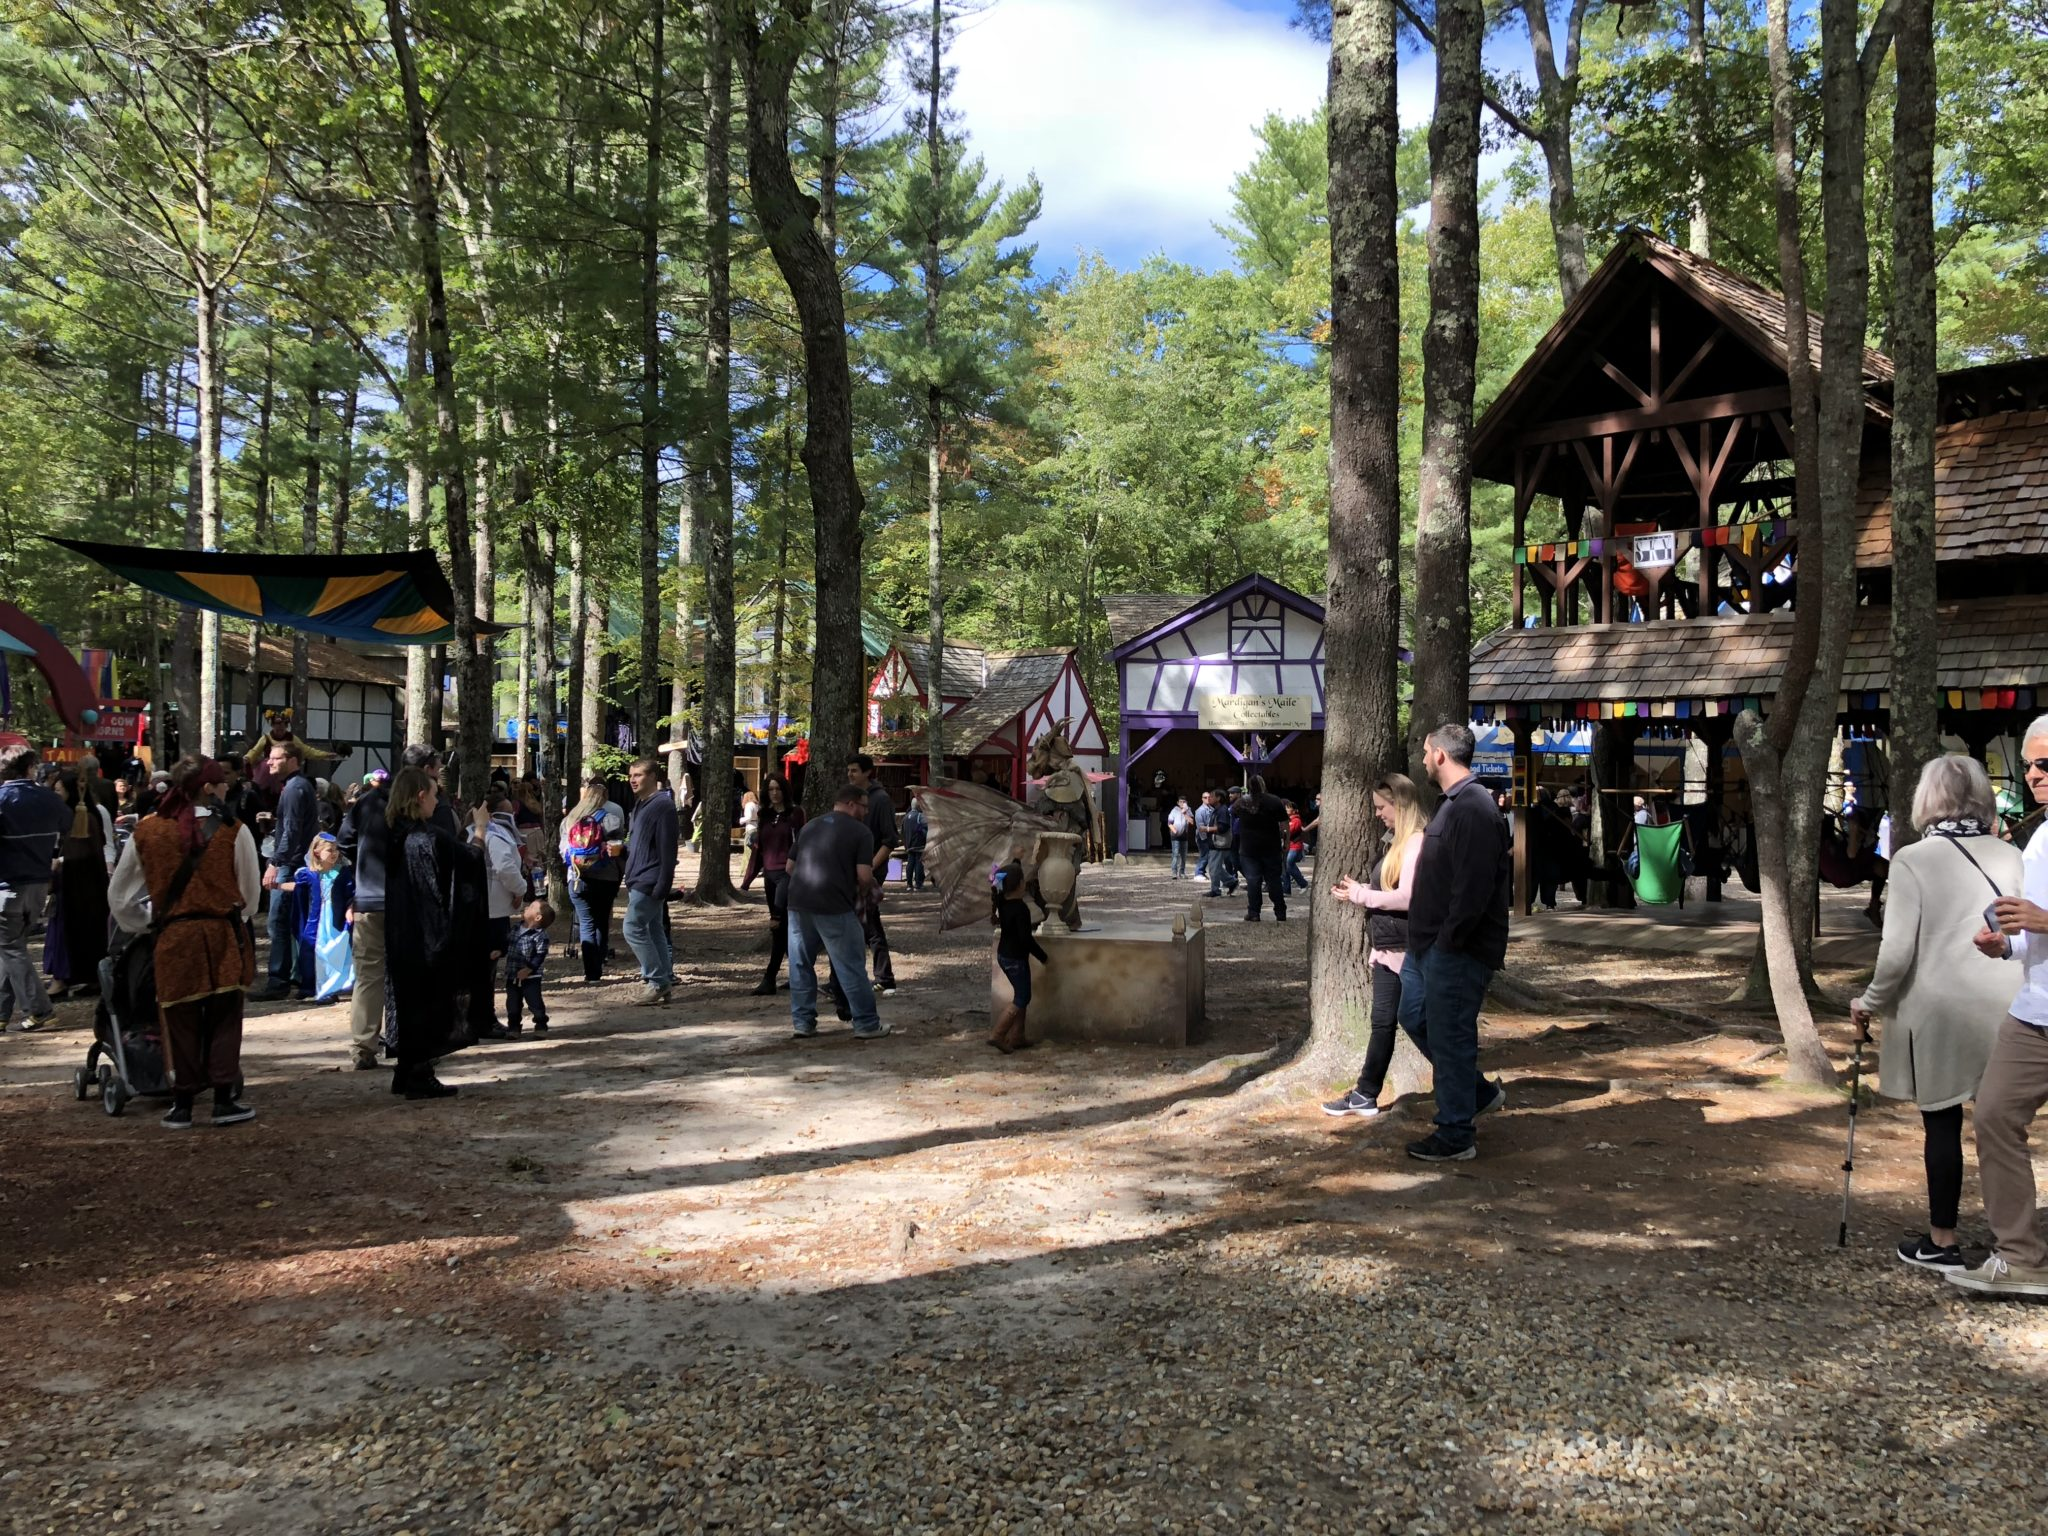 If you are looking for a fun and unique experience for your family, head to King Richard's Faire in Carver, MA. It's an experience like no other.